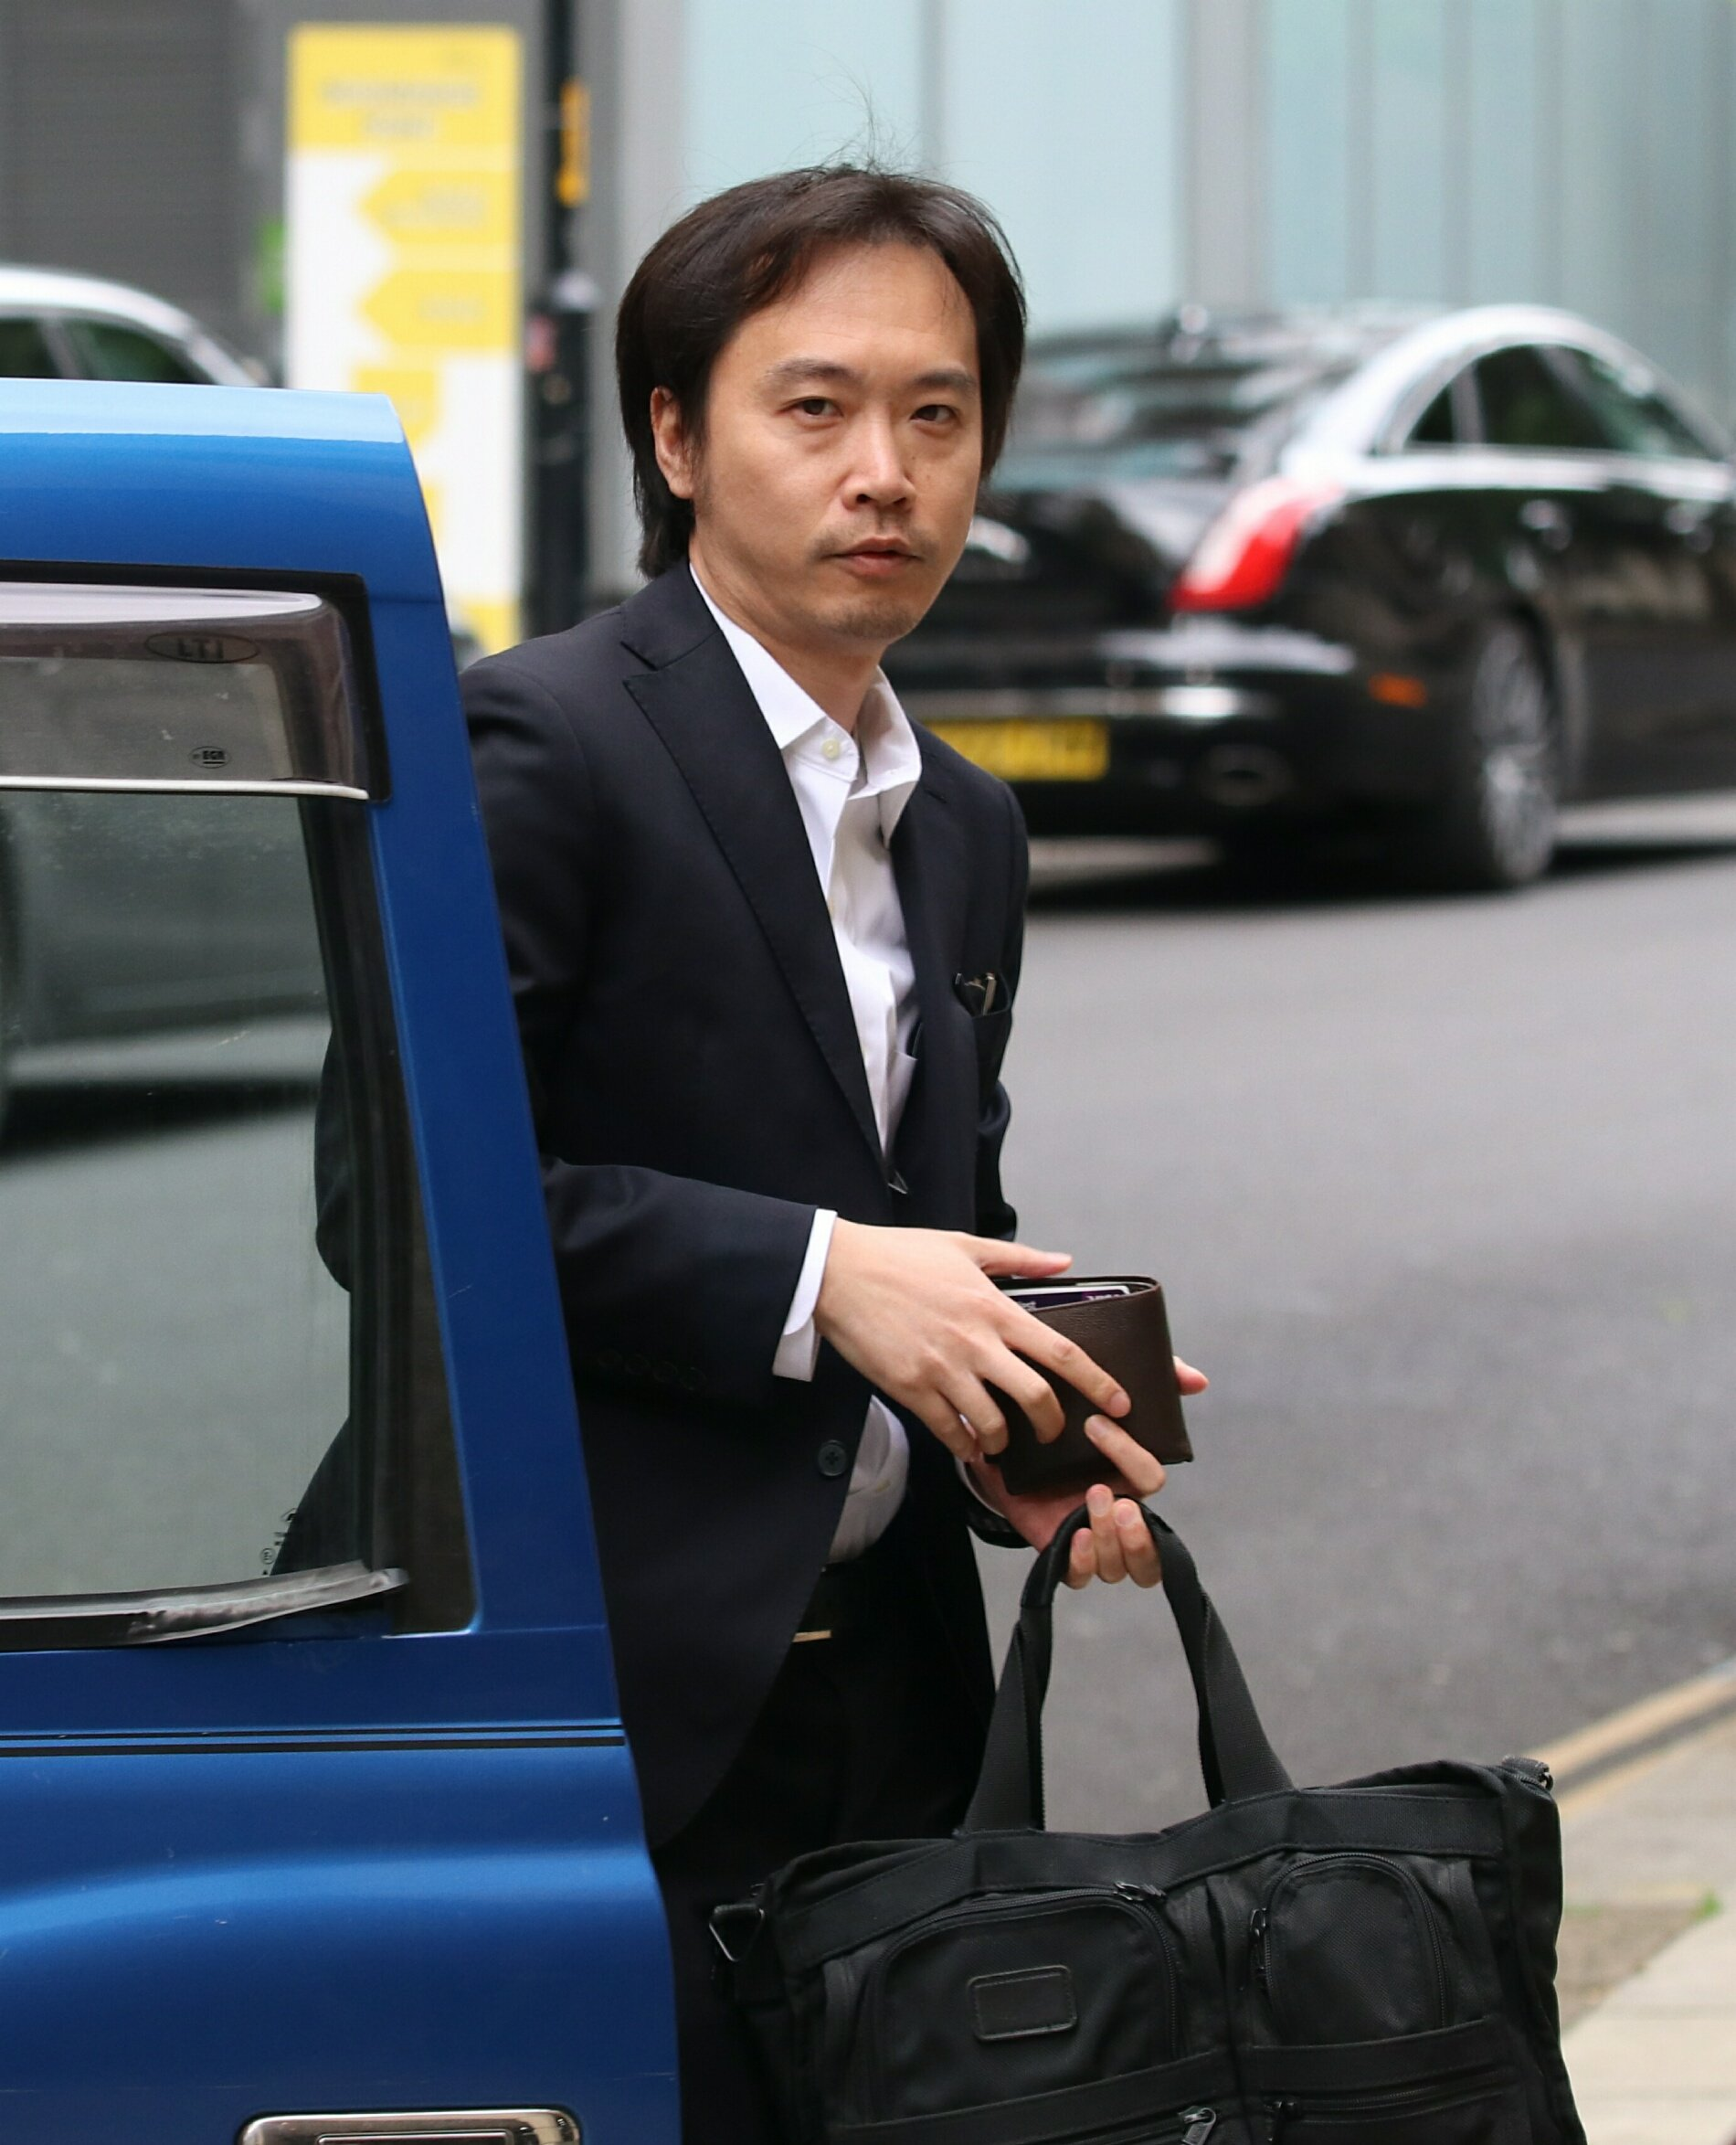 Pic shows Takehiko Ogihara arriving at court. FILE PICTURE Blackfriars Crown Court trial of Nomura Bank Vice President Takehiko Ogihara, for rape and sexual assault. The trial is starting today. 14.3.18 SEE STORY CENTRAL NEWS